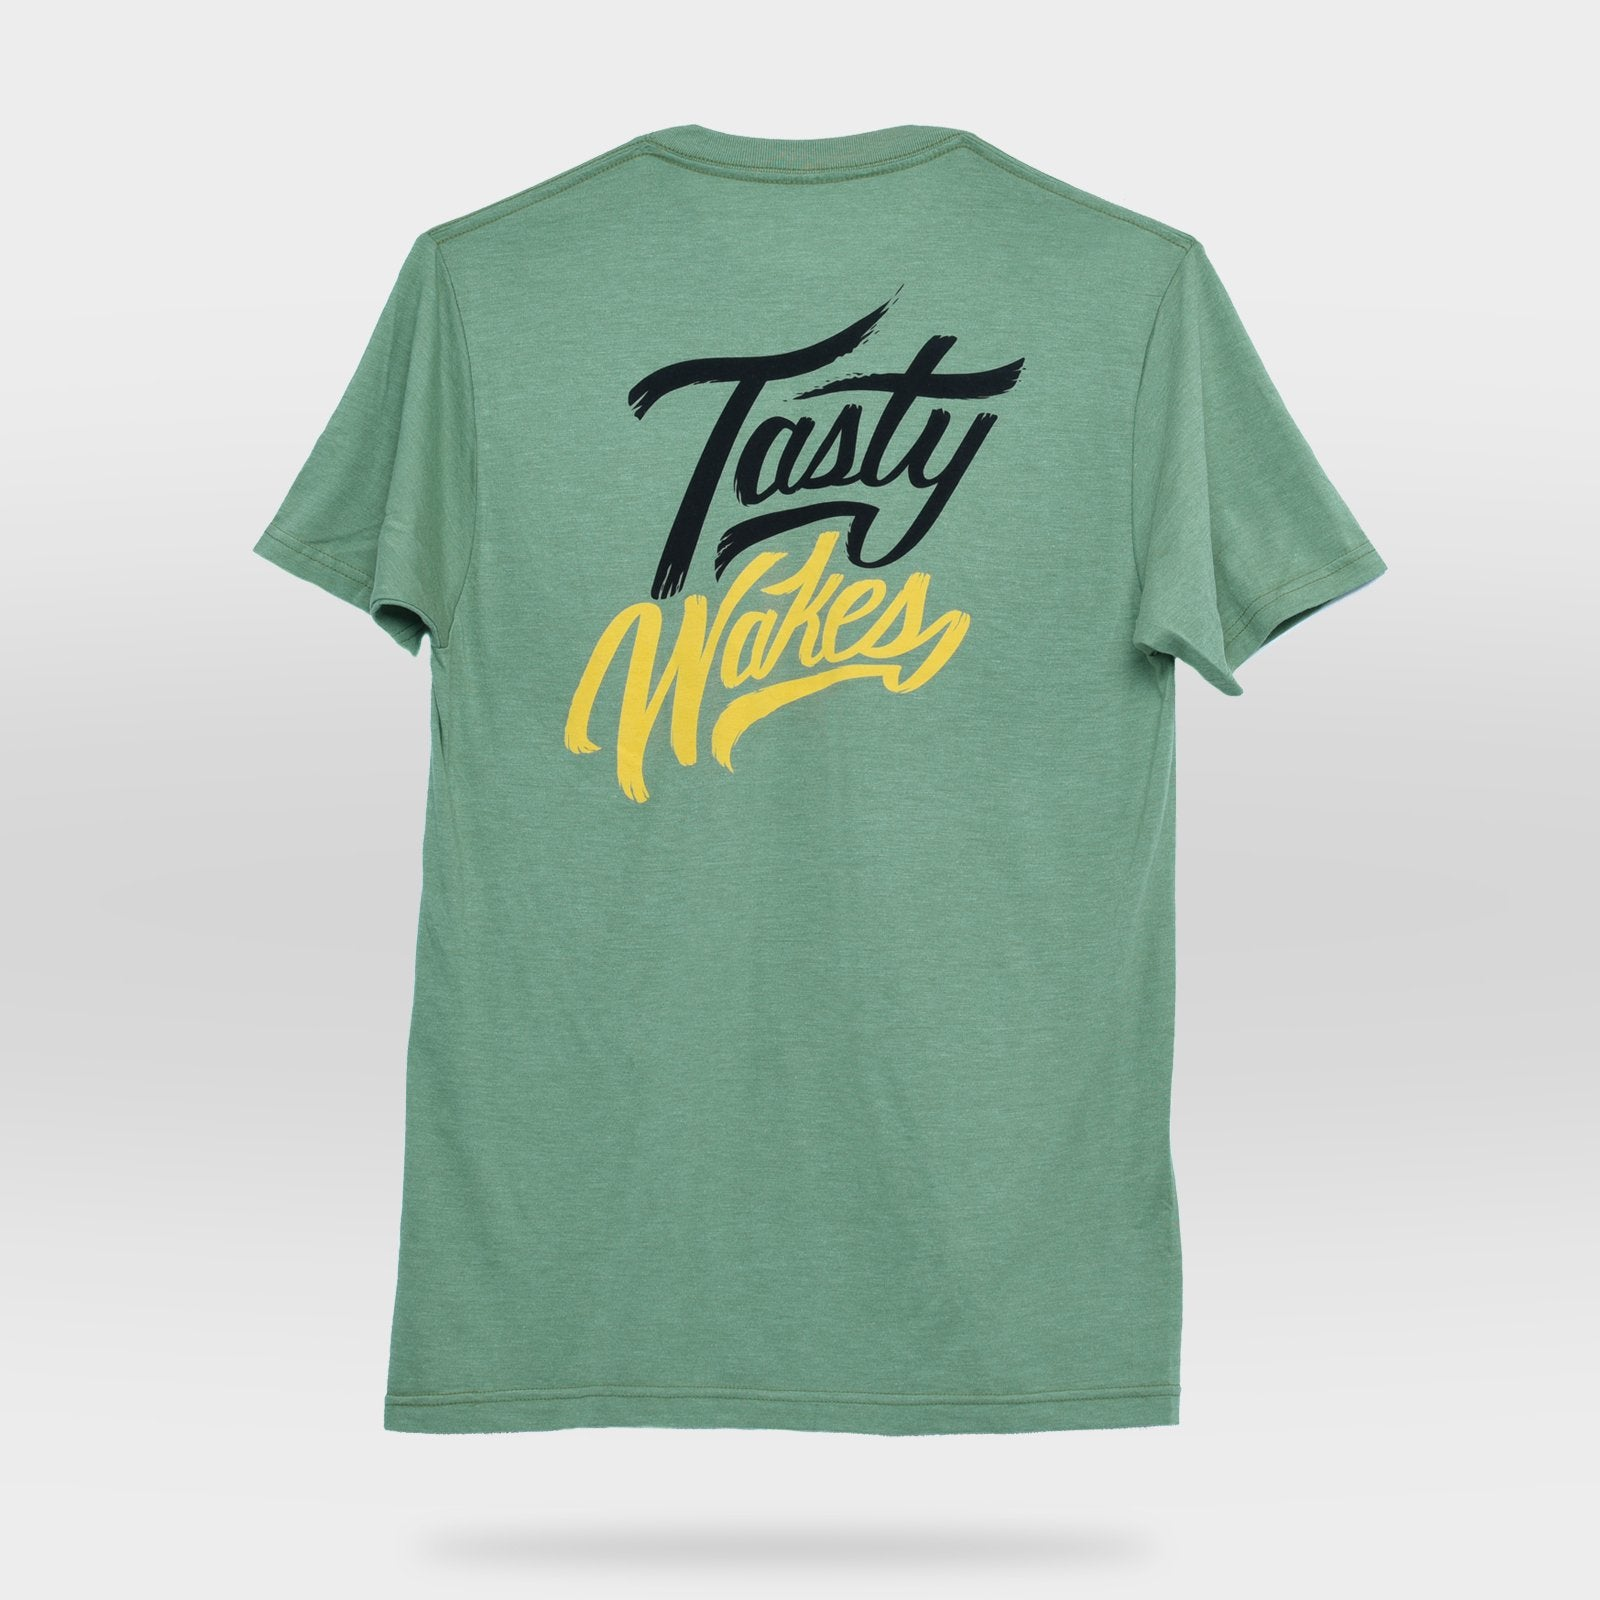 TEES :: Tasty Wakes T-shirt